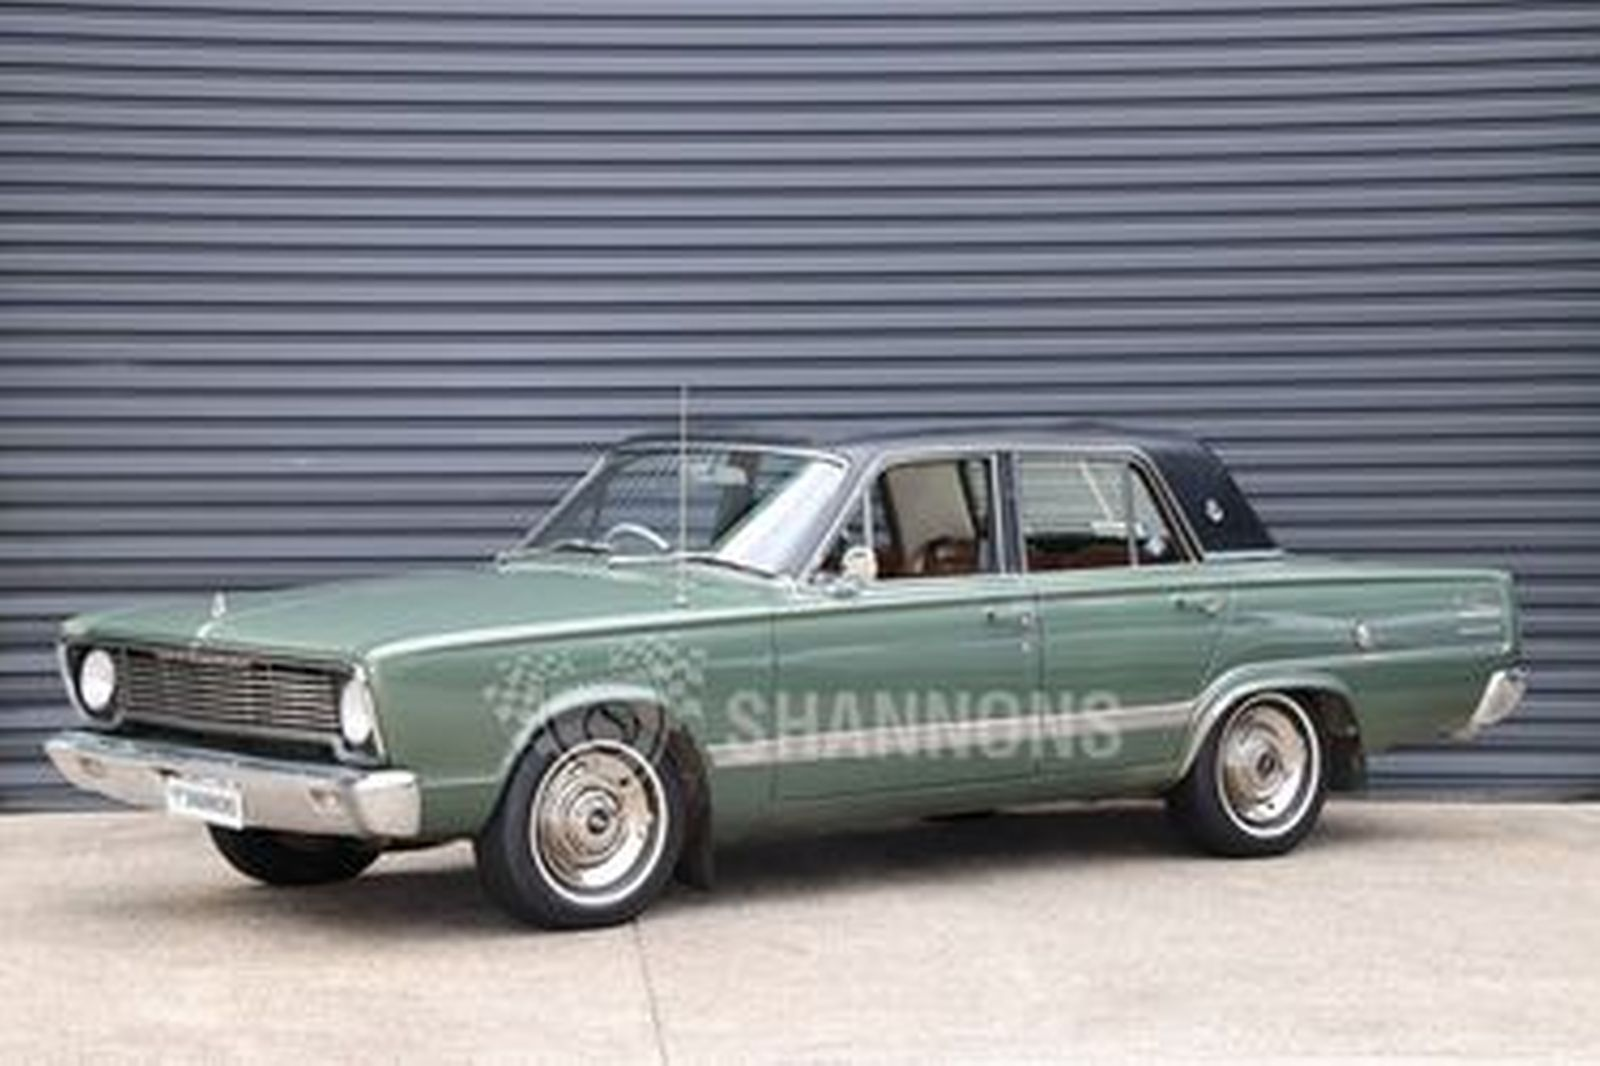 Sold chrysler valiant vc v8 sedan auctions lot 43 for Motor vehicle open on saturday